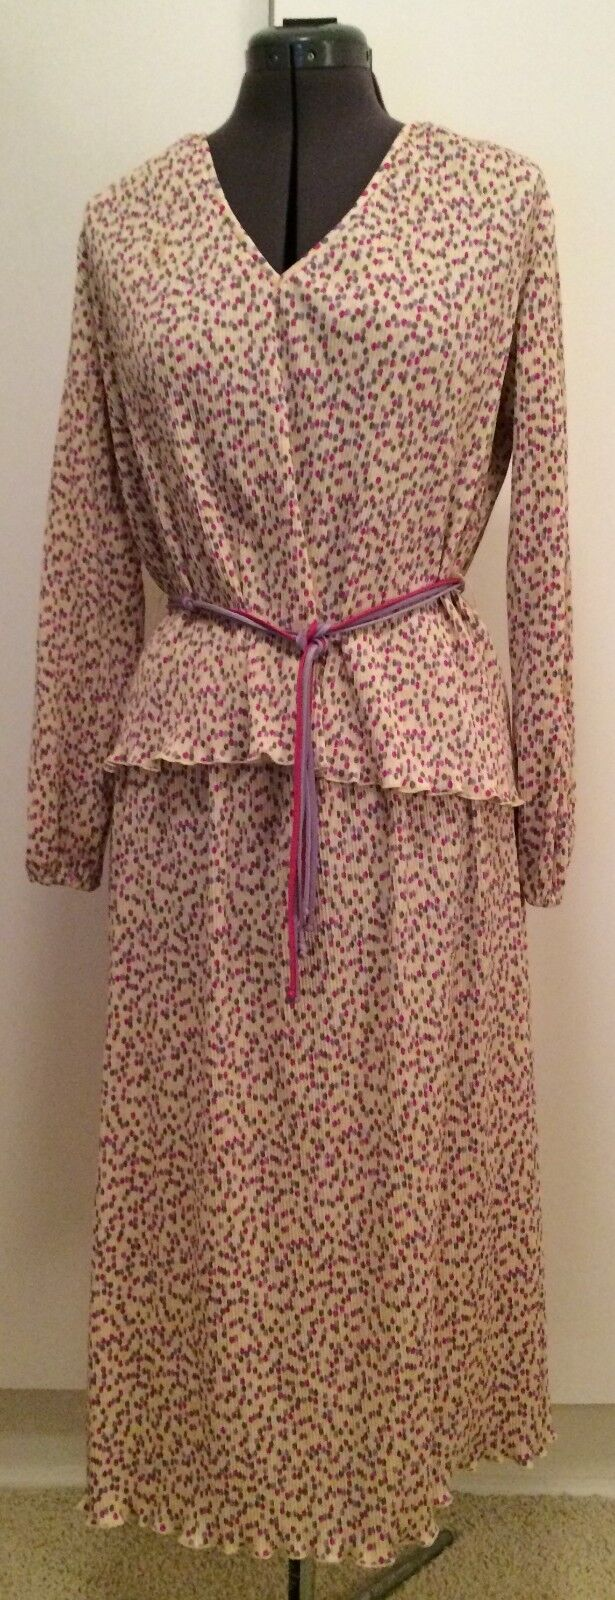 Mr. B Vintage Womens Two Piece Polka Dot Pink Purple Blouse Belted Top Skirt